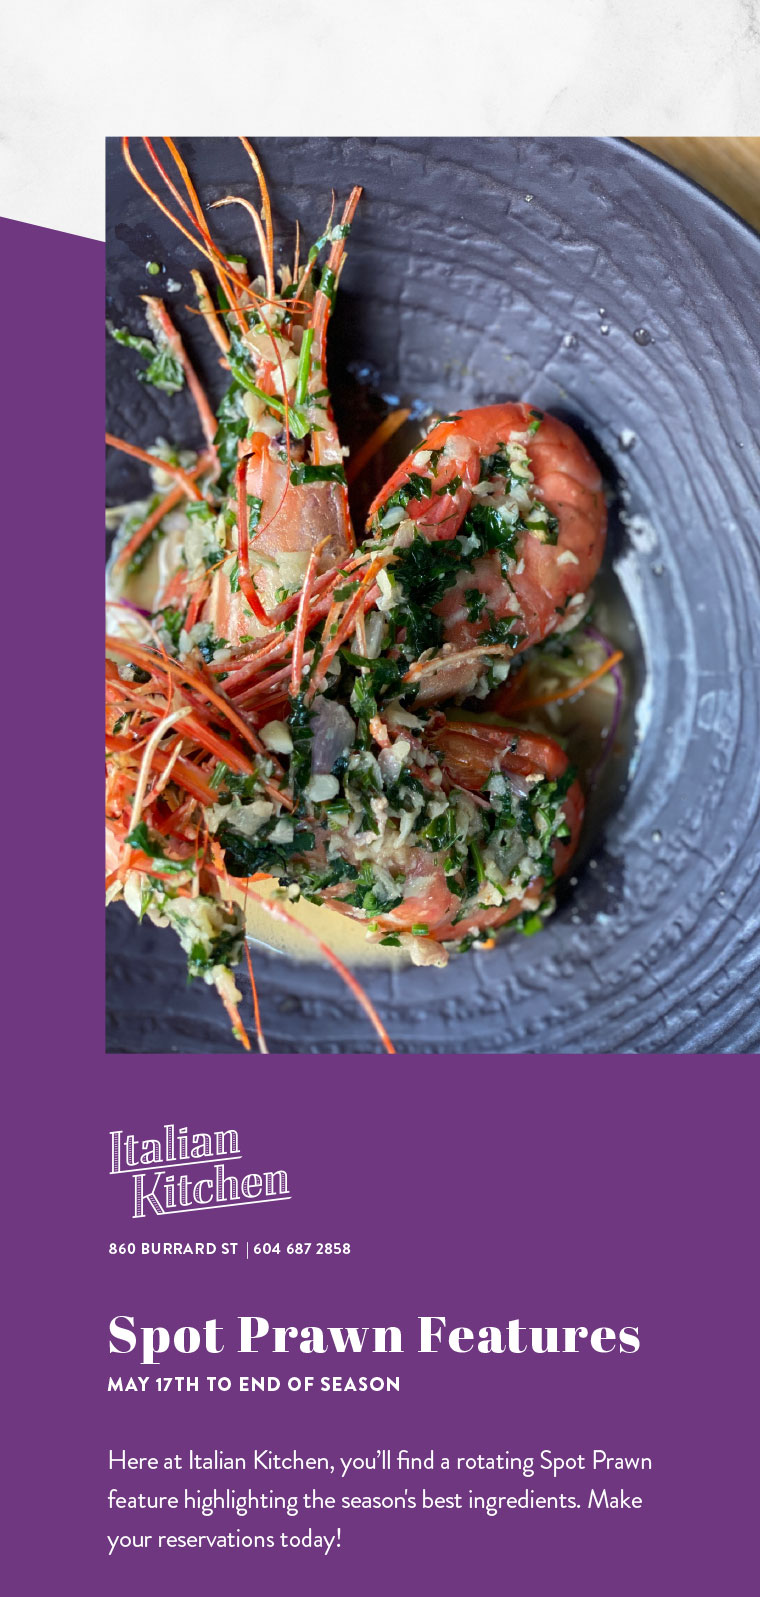 Spot Prawn Features MAY 17TH TO END OF SEASON  Here at Italian Kitchen, you'll find a rotating Spot Prawn feature highlighting the season's best ingredients. Make your reservations today!